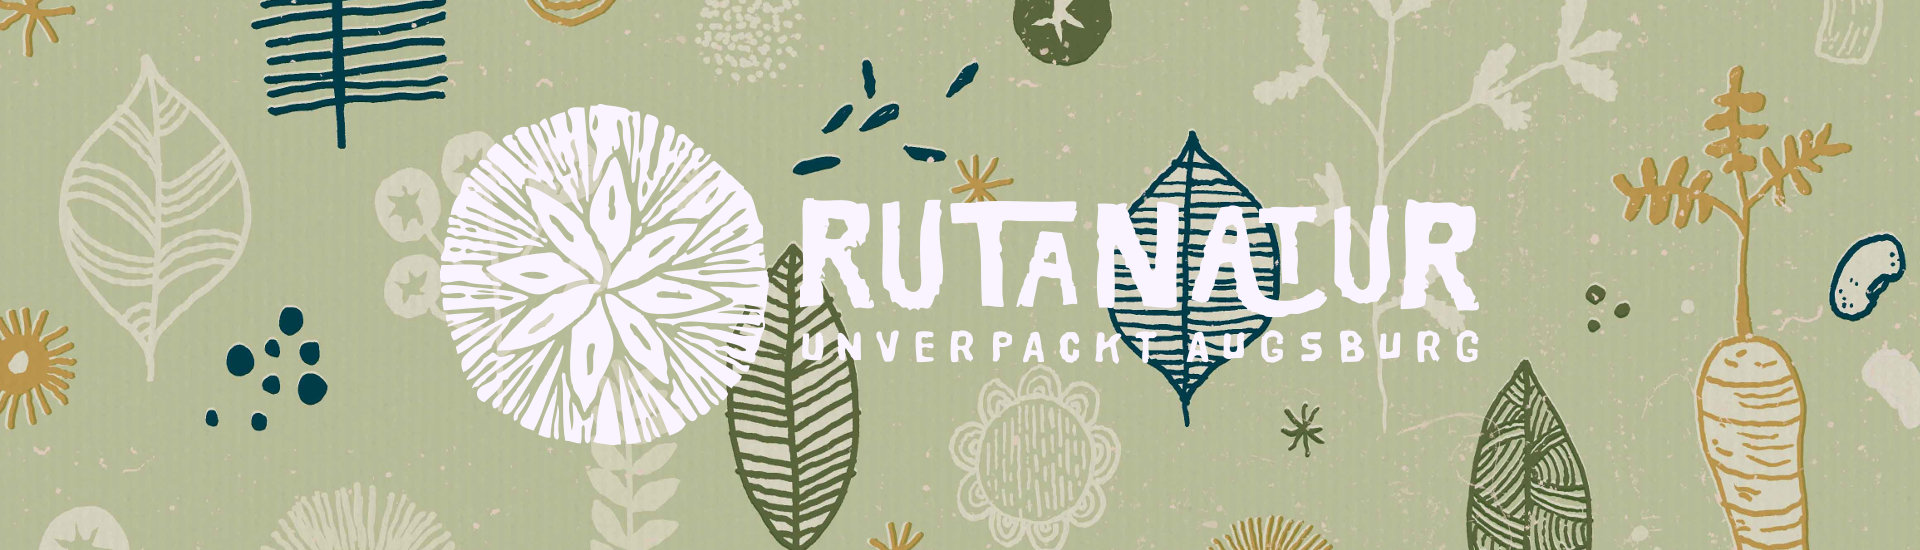 rutaNatur - Pattern 2